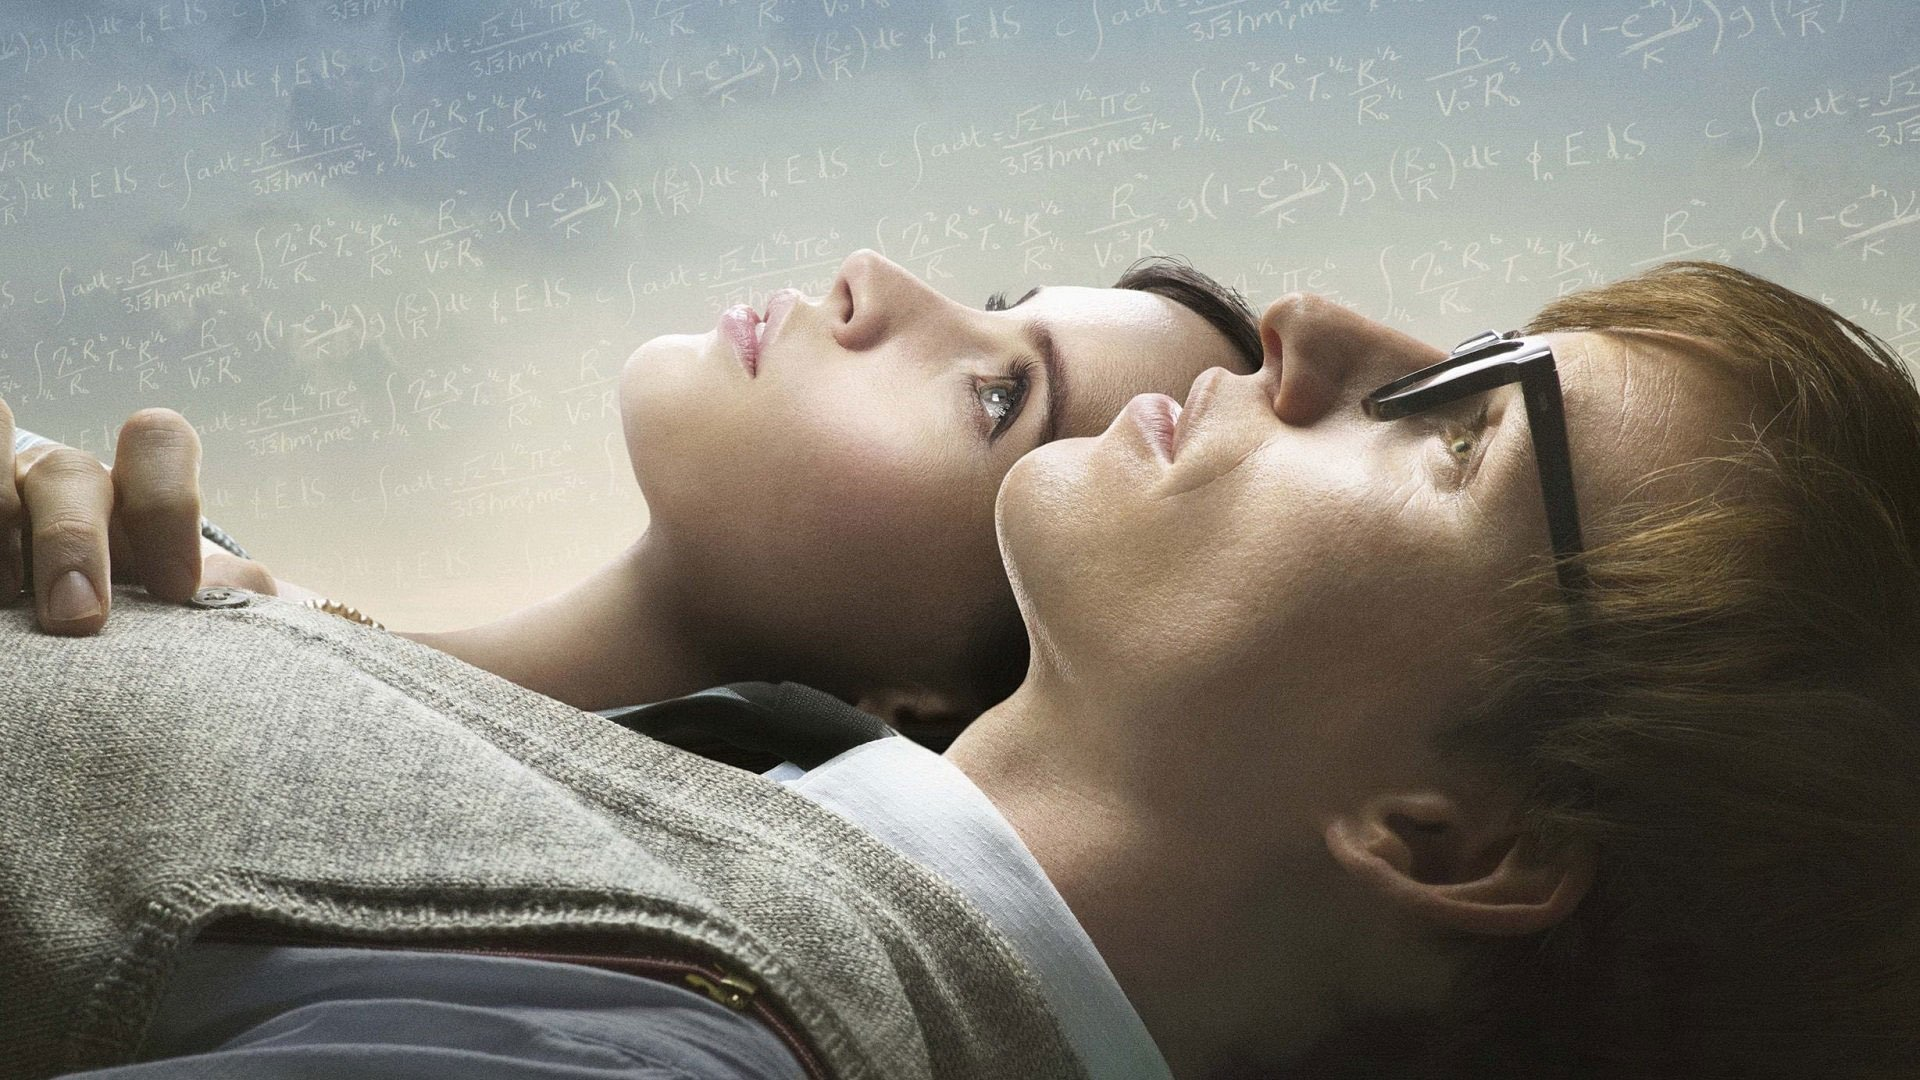 Download Wallpaper Movie The Theory Everything - thumb-1920-825427  Collection_698488.jpg